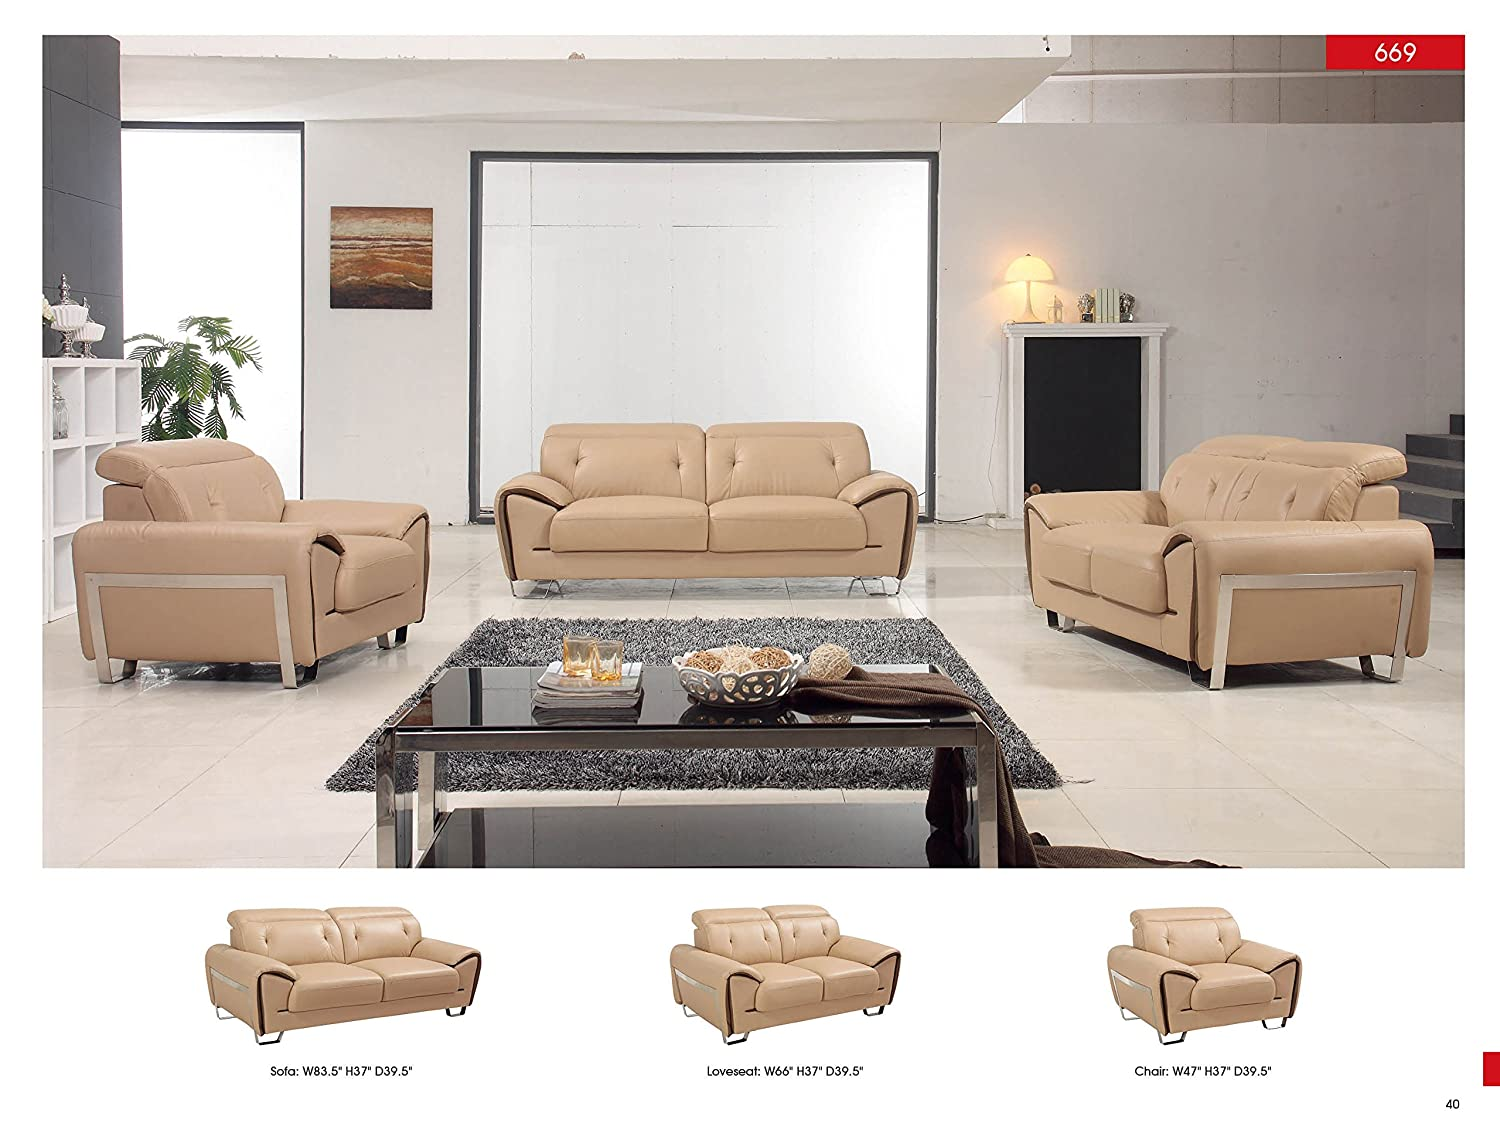 Amazon.com: Z-69 Modern Living Room Leather Sofa Set ...